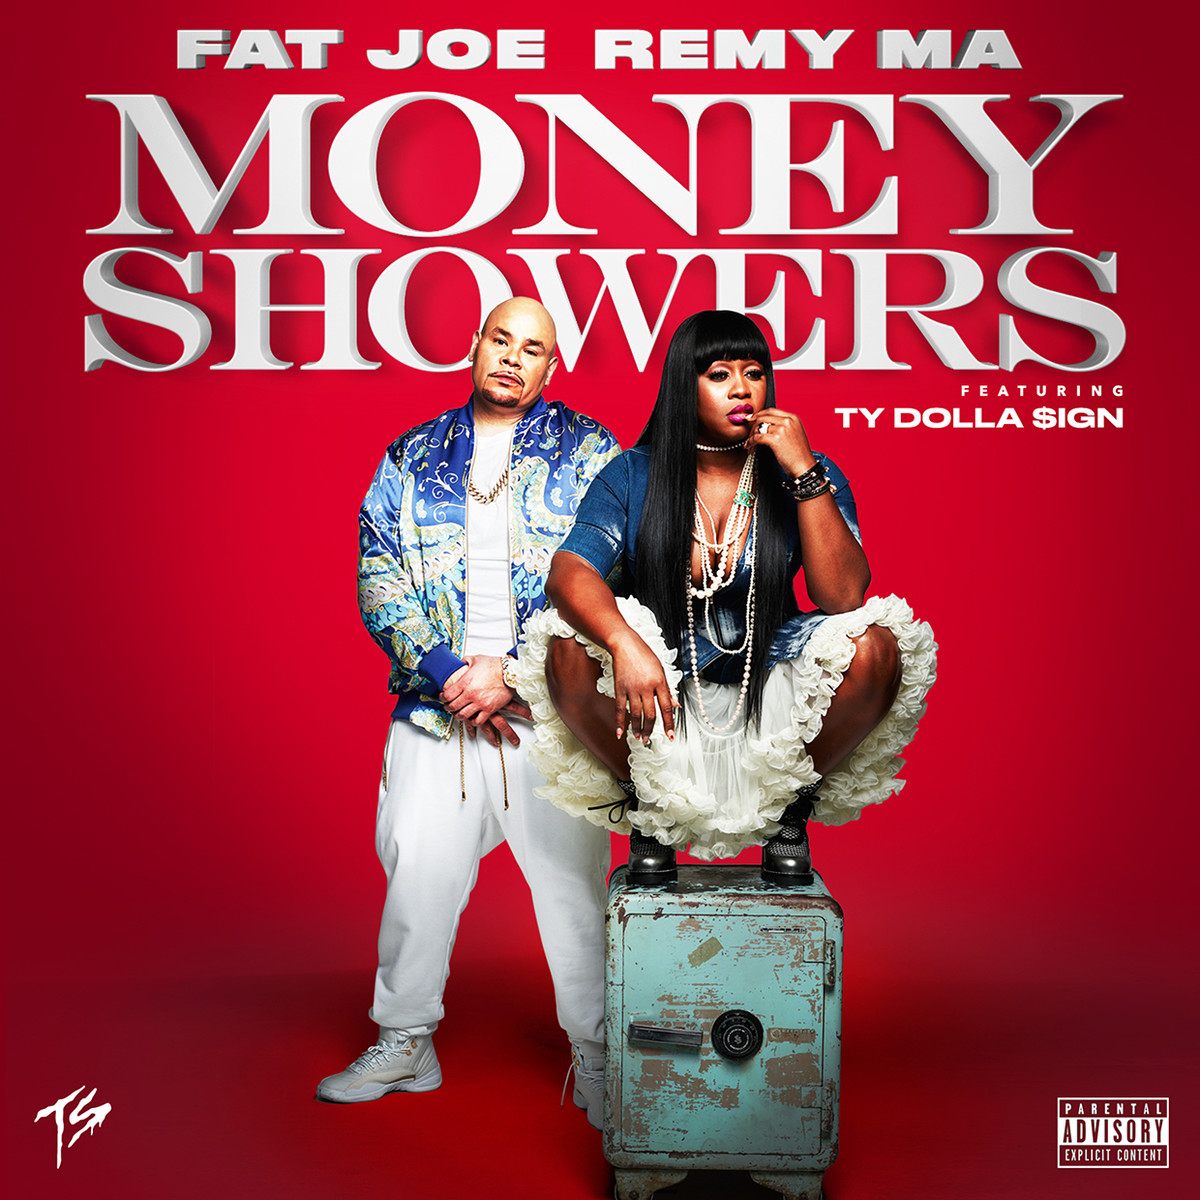 fat-joe-ft-remy-ma-ty-dolla-ign-money-showers